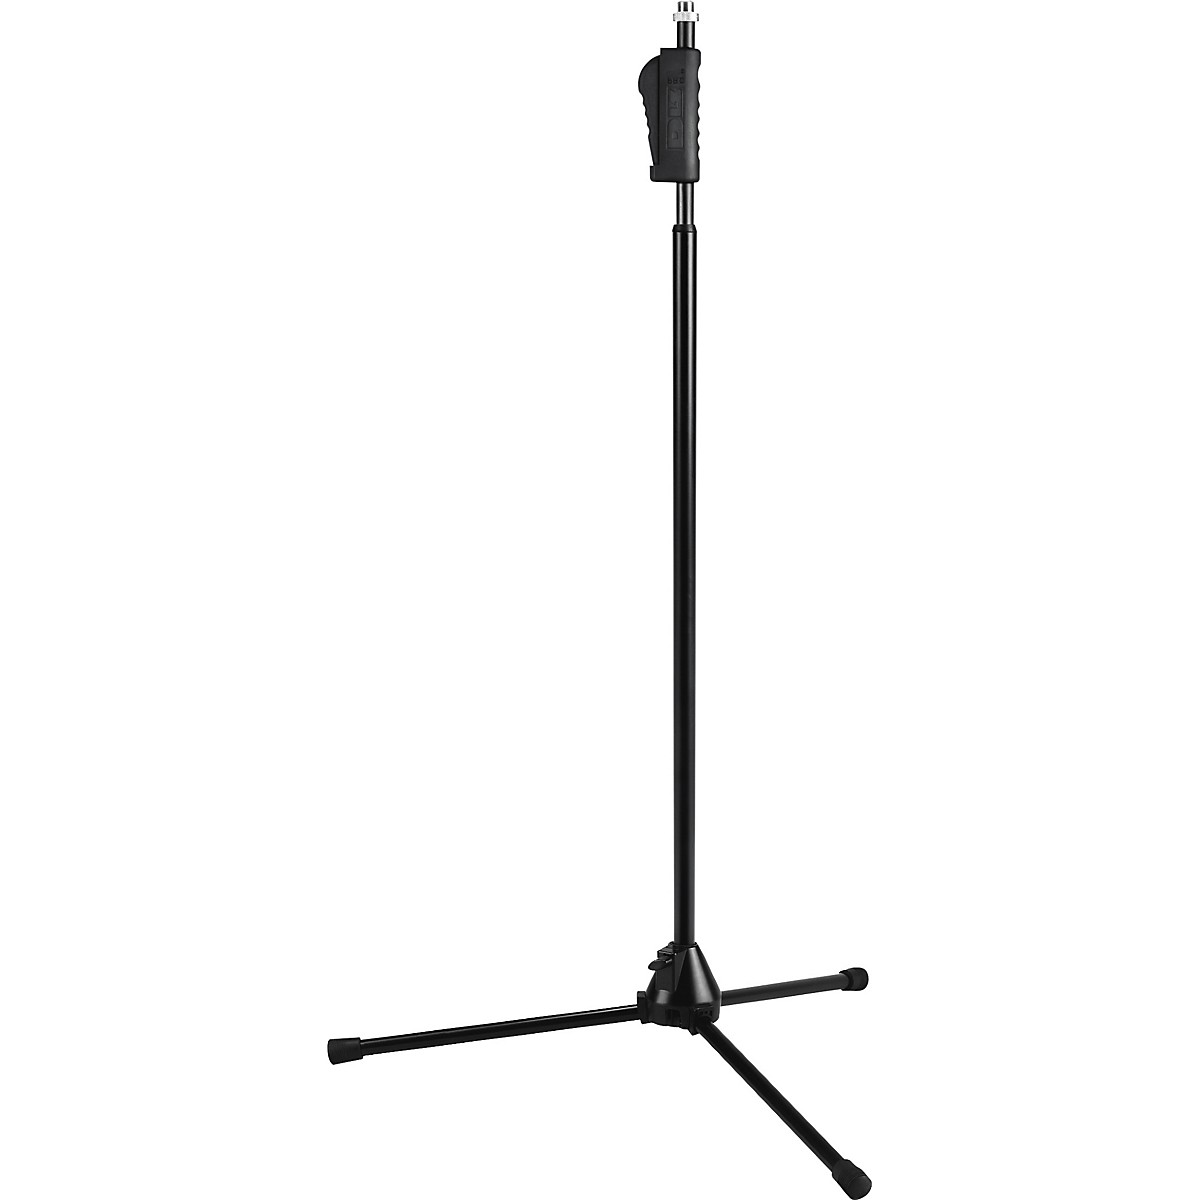 DR Pro Quick Release Tripod Microphone Stand